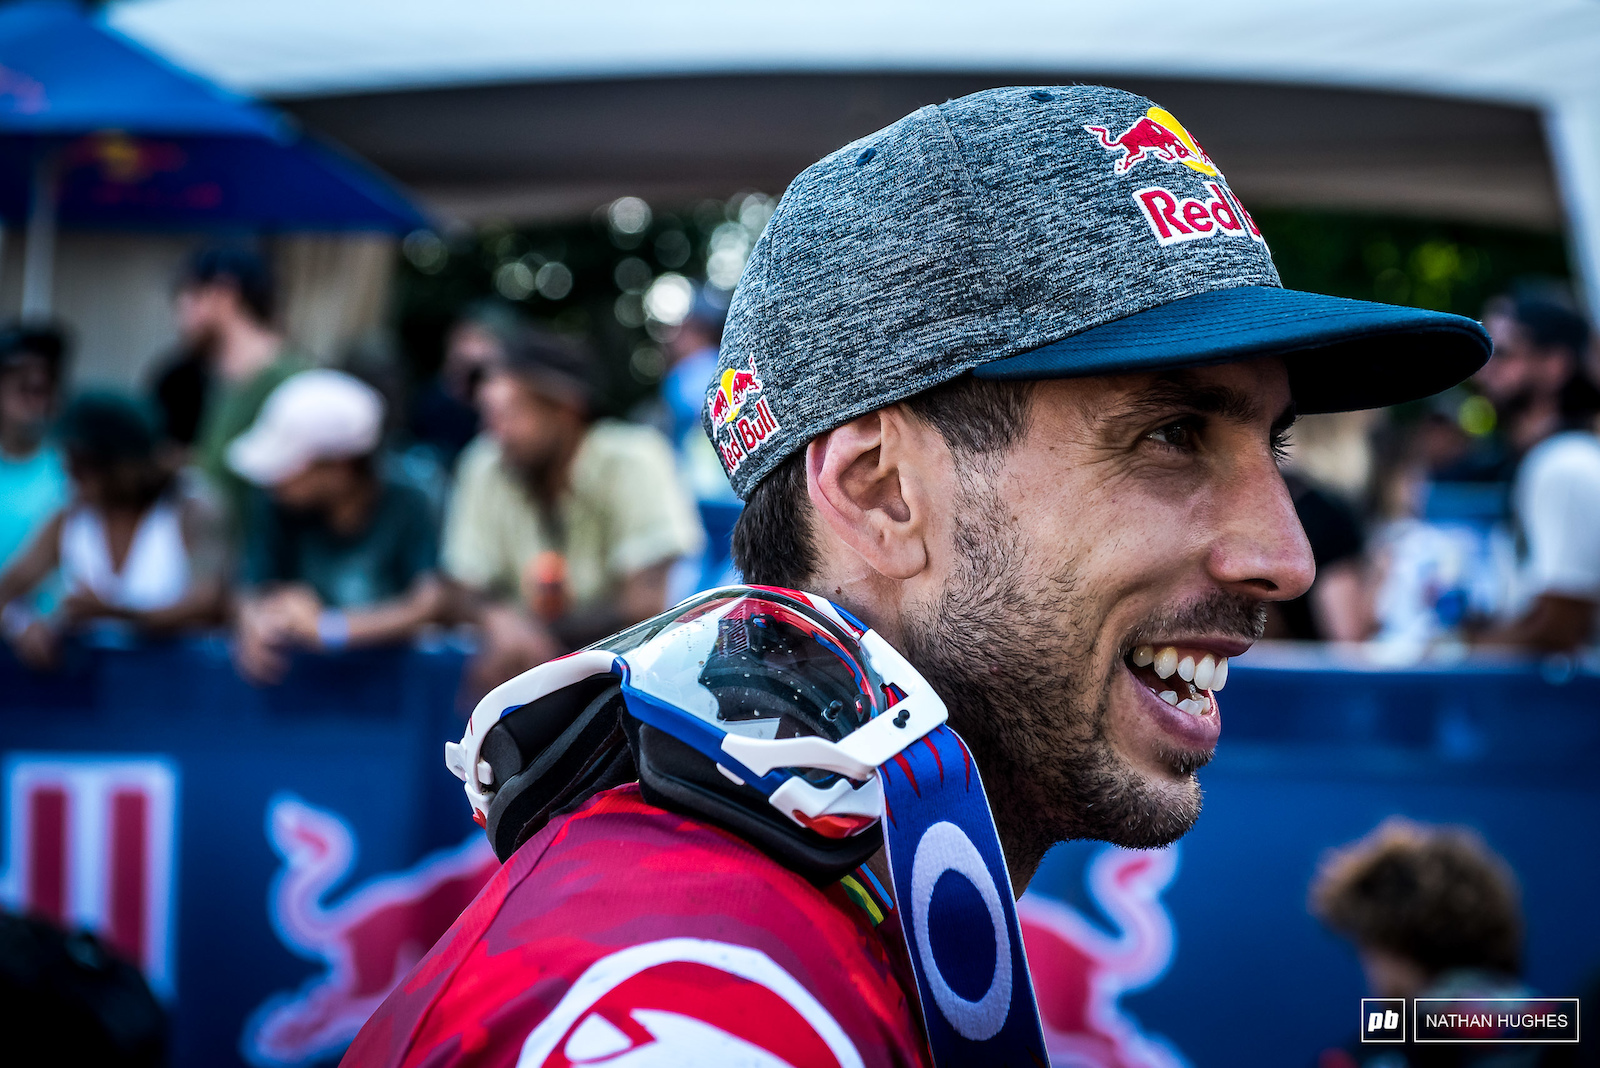 100 World Cups for this man and finally back in the top 10 to boot. Congrats to Gee Atherton.